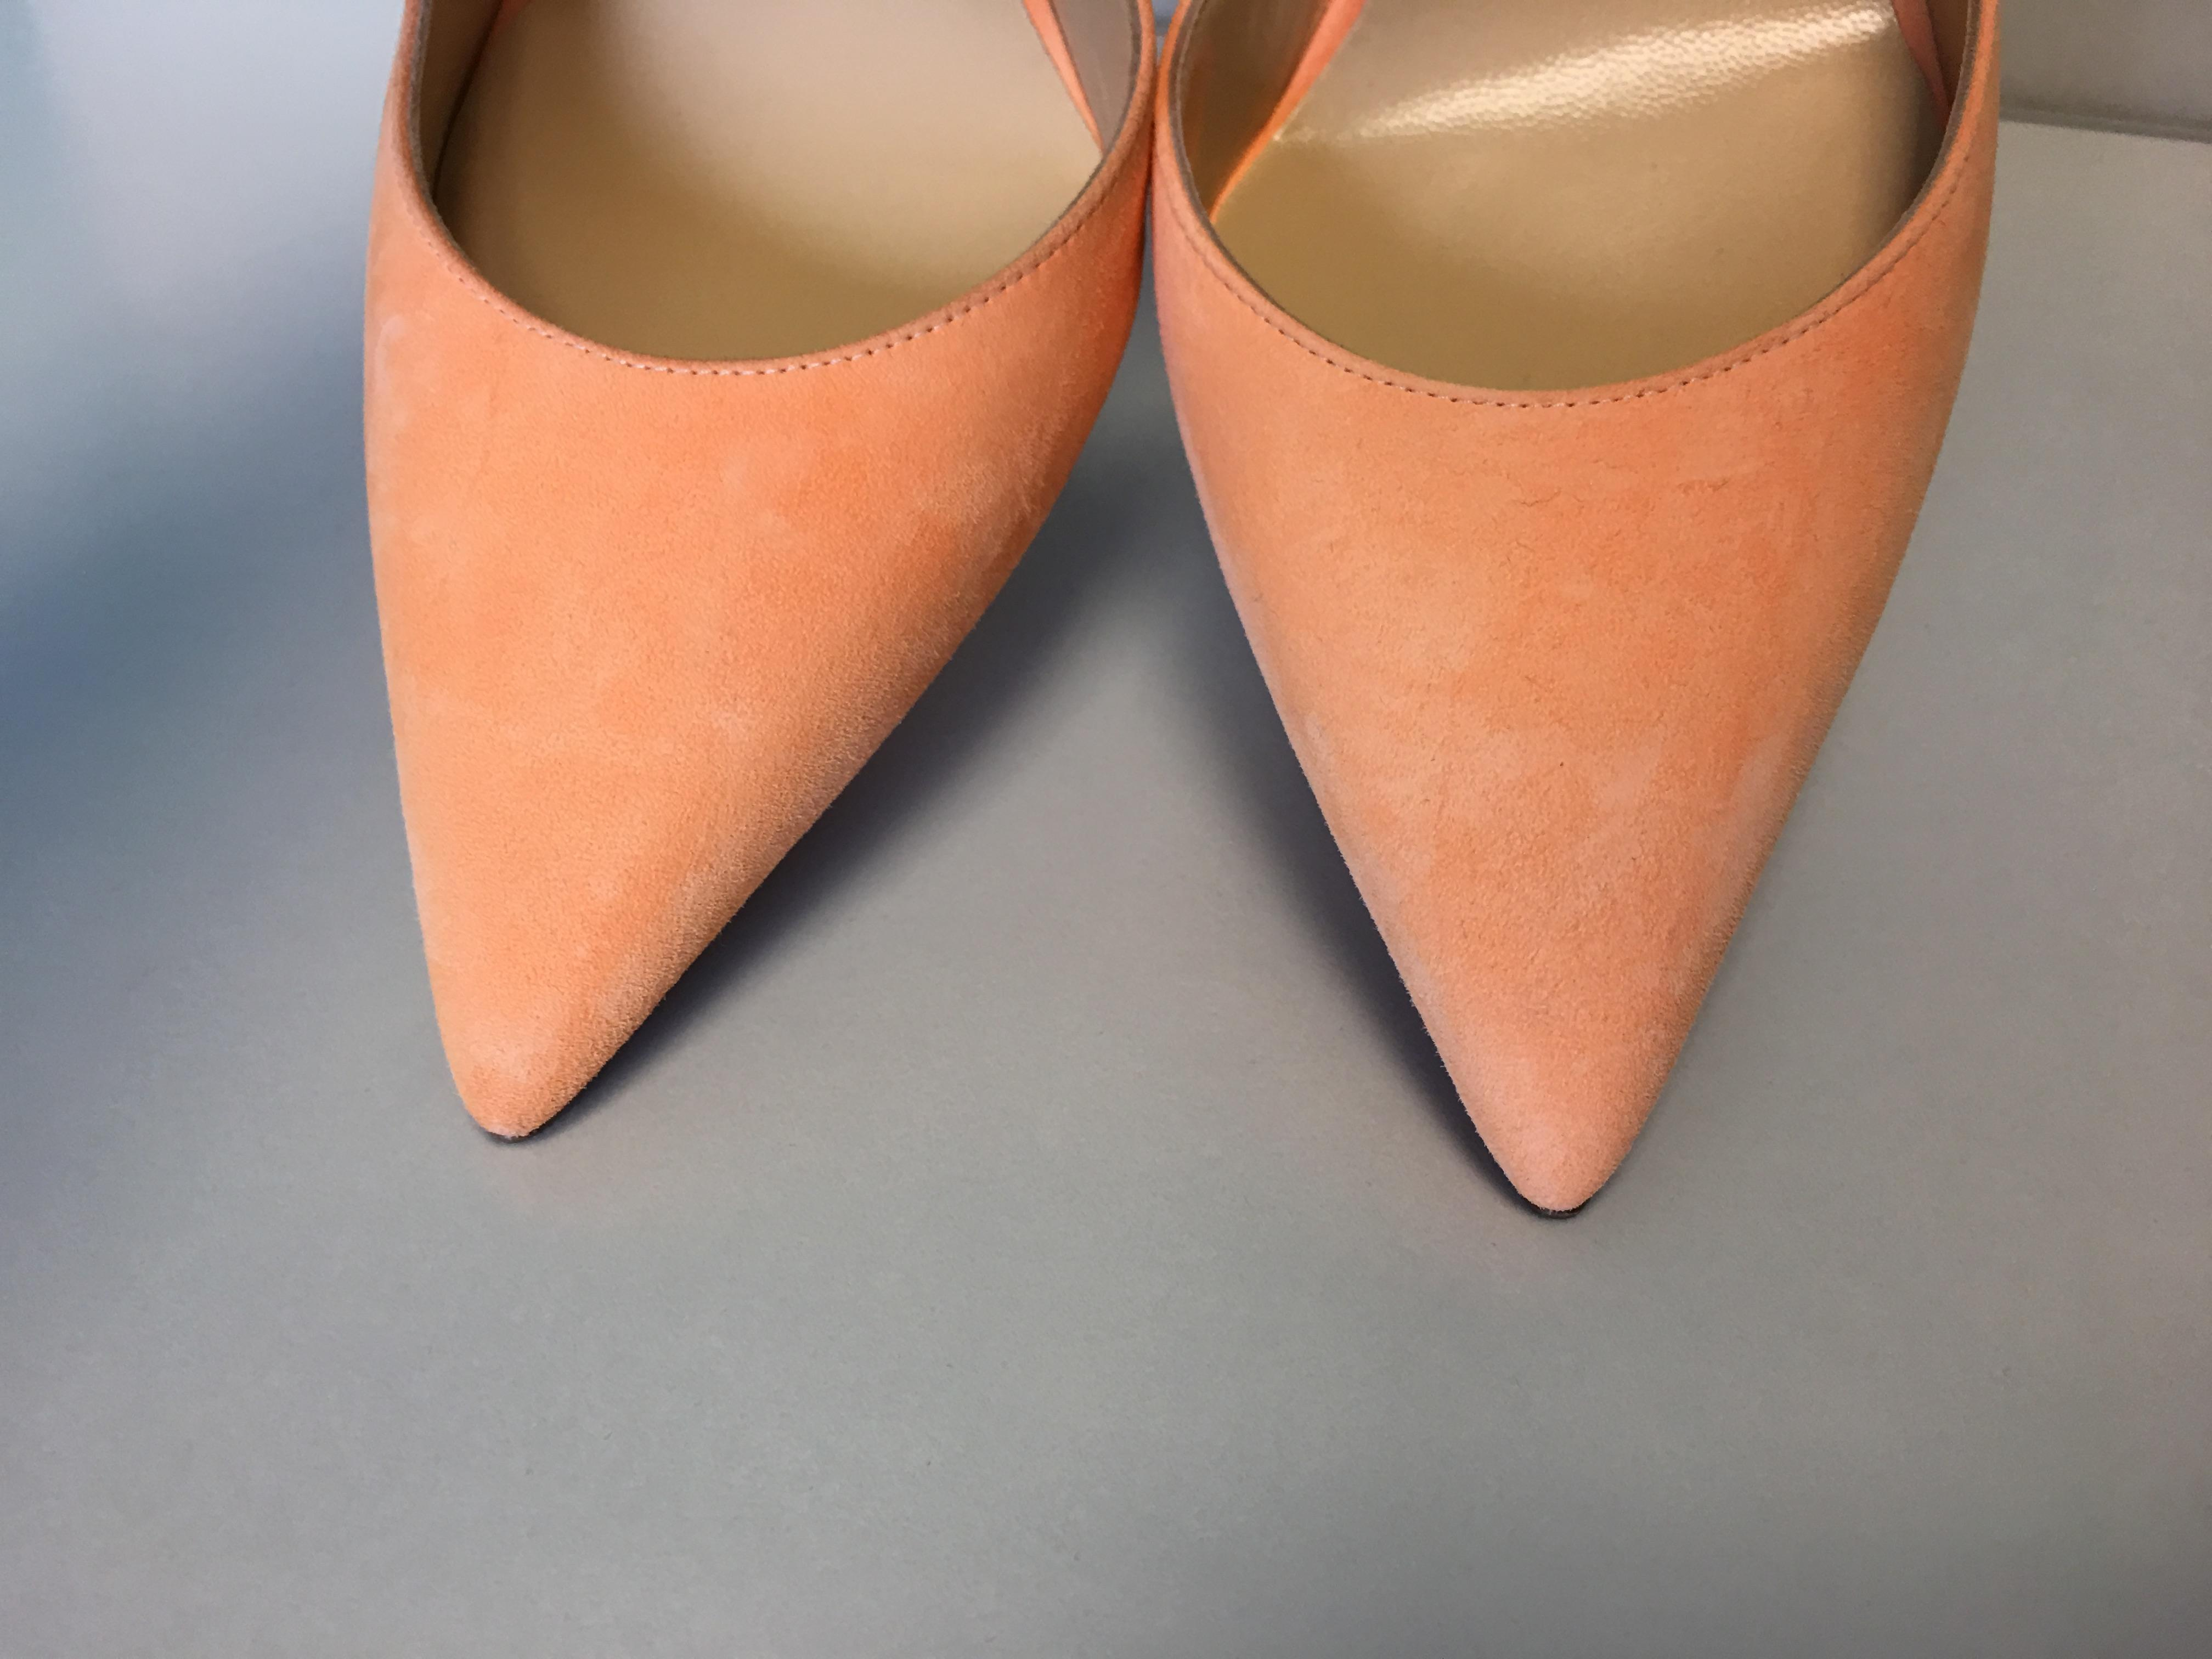 5630a1c9ea4 ... Christian Louboutin Louboutin Louboutin Orange Classic Iriza 100mm  Sunset Suede Leather Dorsay Point-toe Heel ...